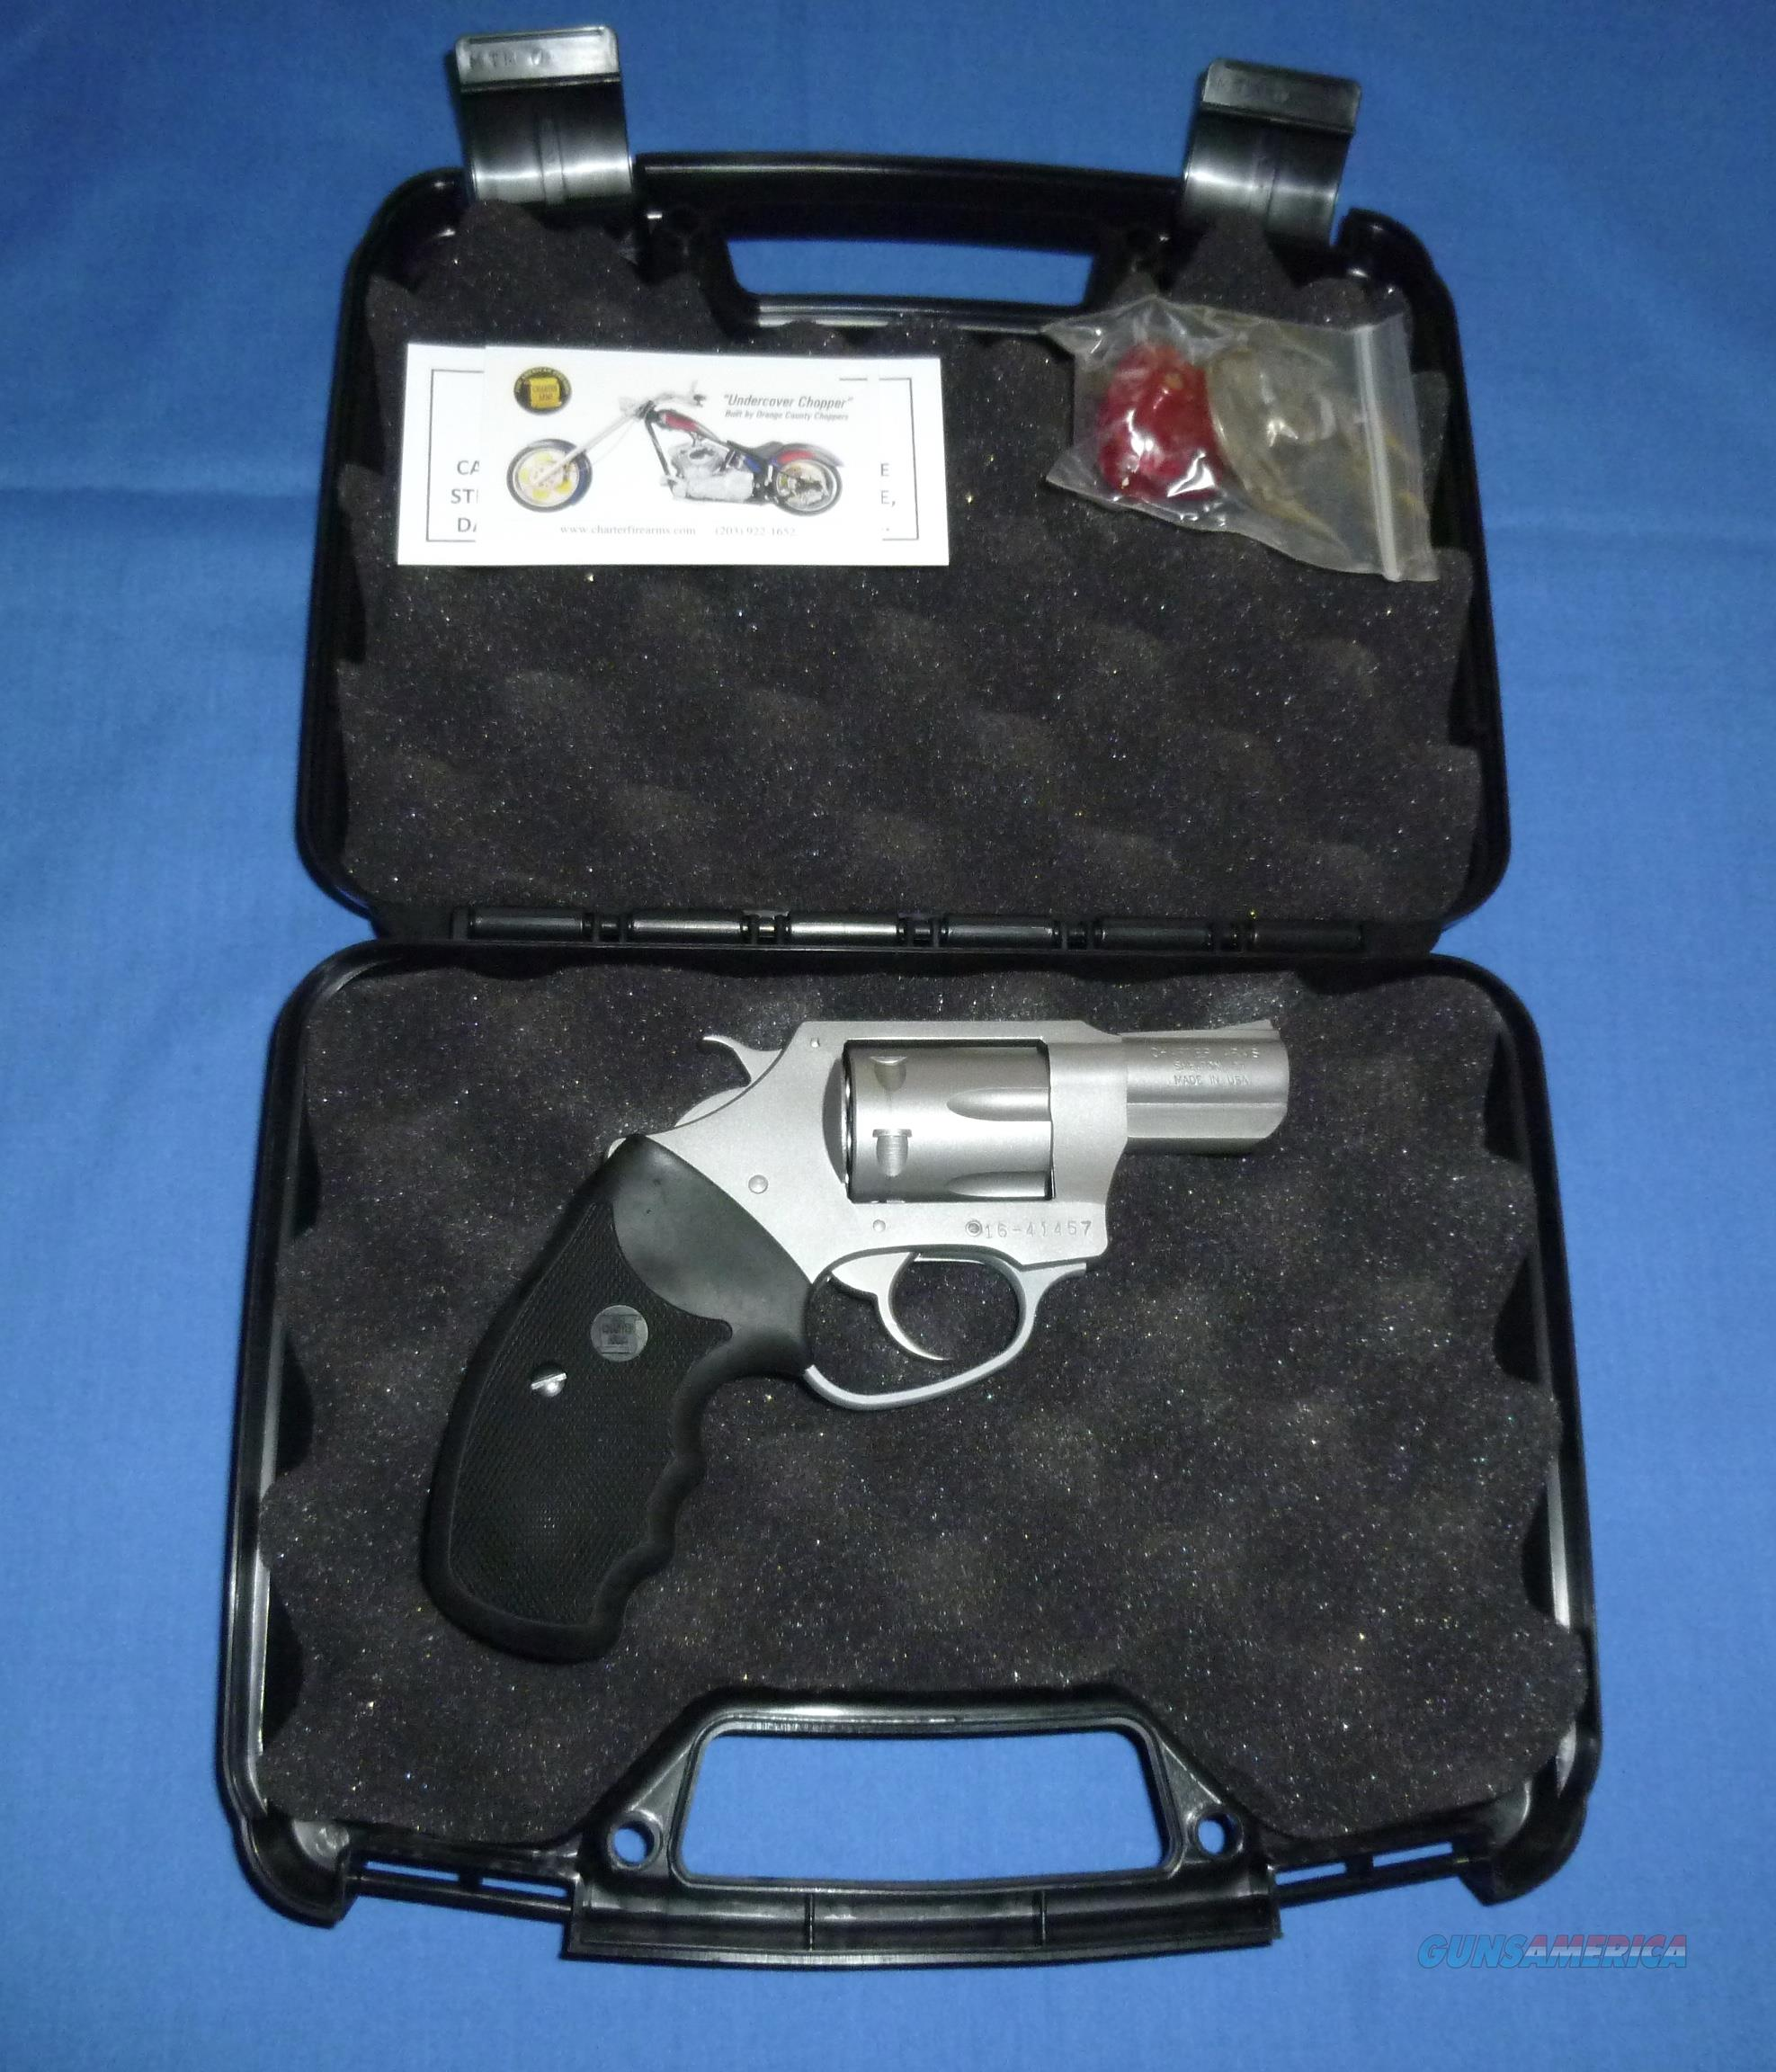 CHARTER ARMS PATHFINDER 22LR SNUB-NOSED REVOLVER NEW!  Guns > Pistols > Charter Arms Revolvers